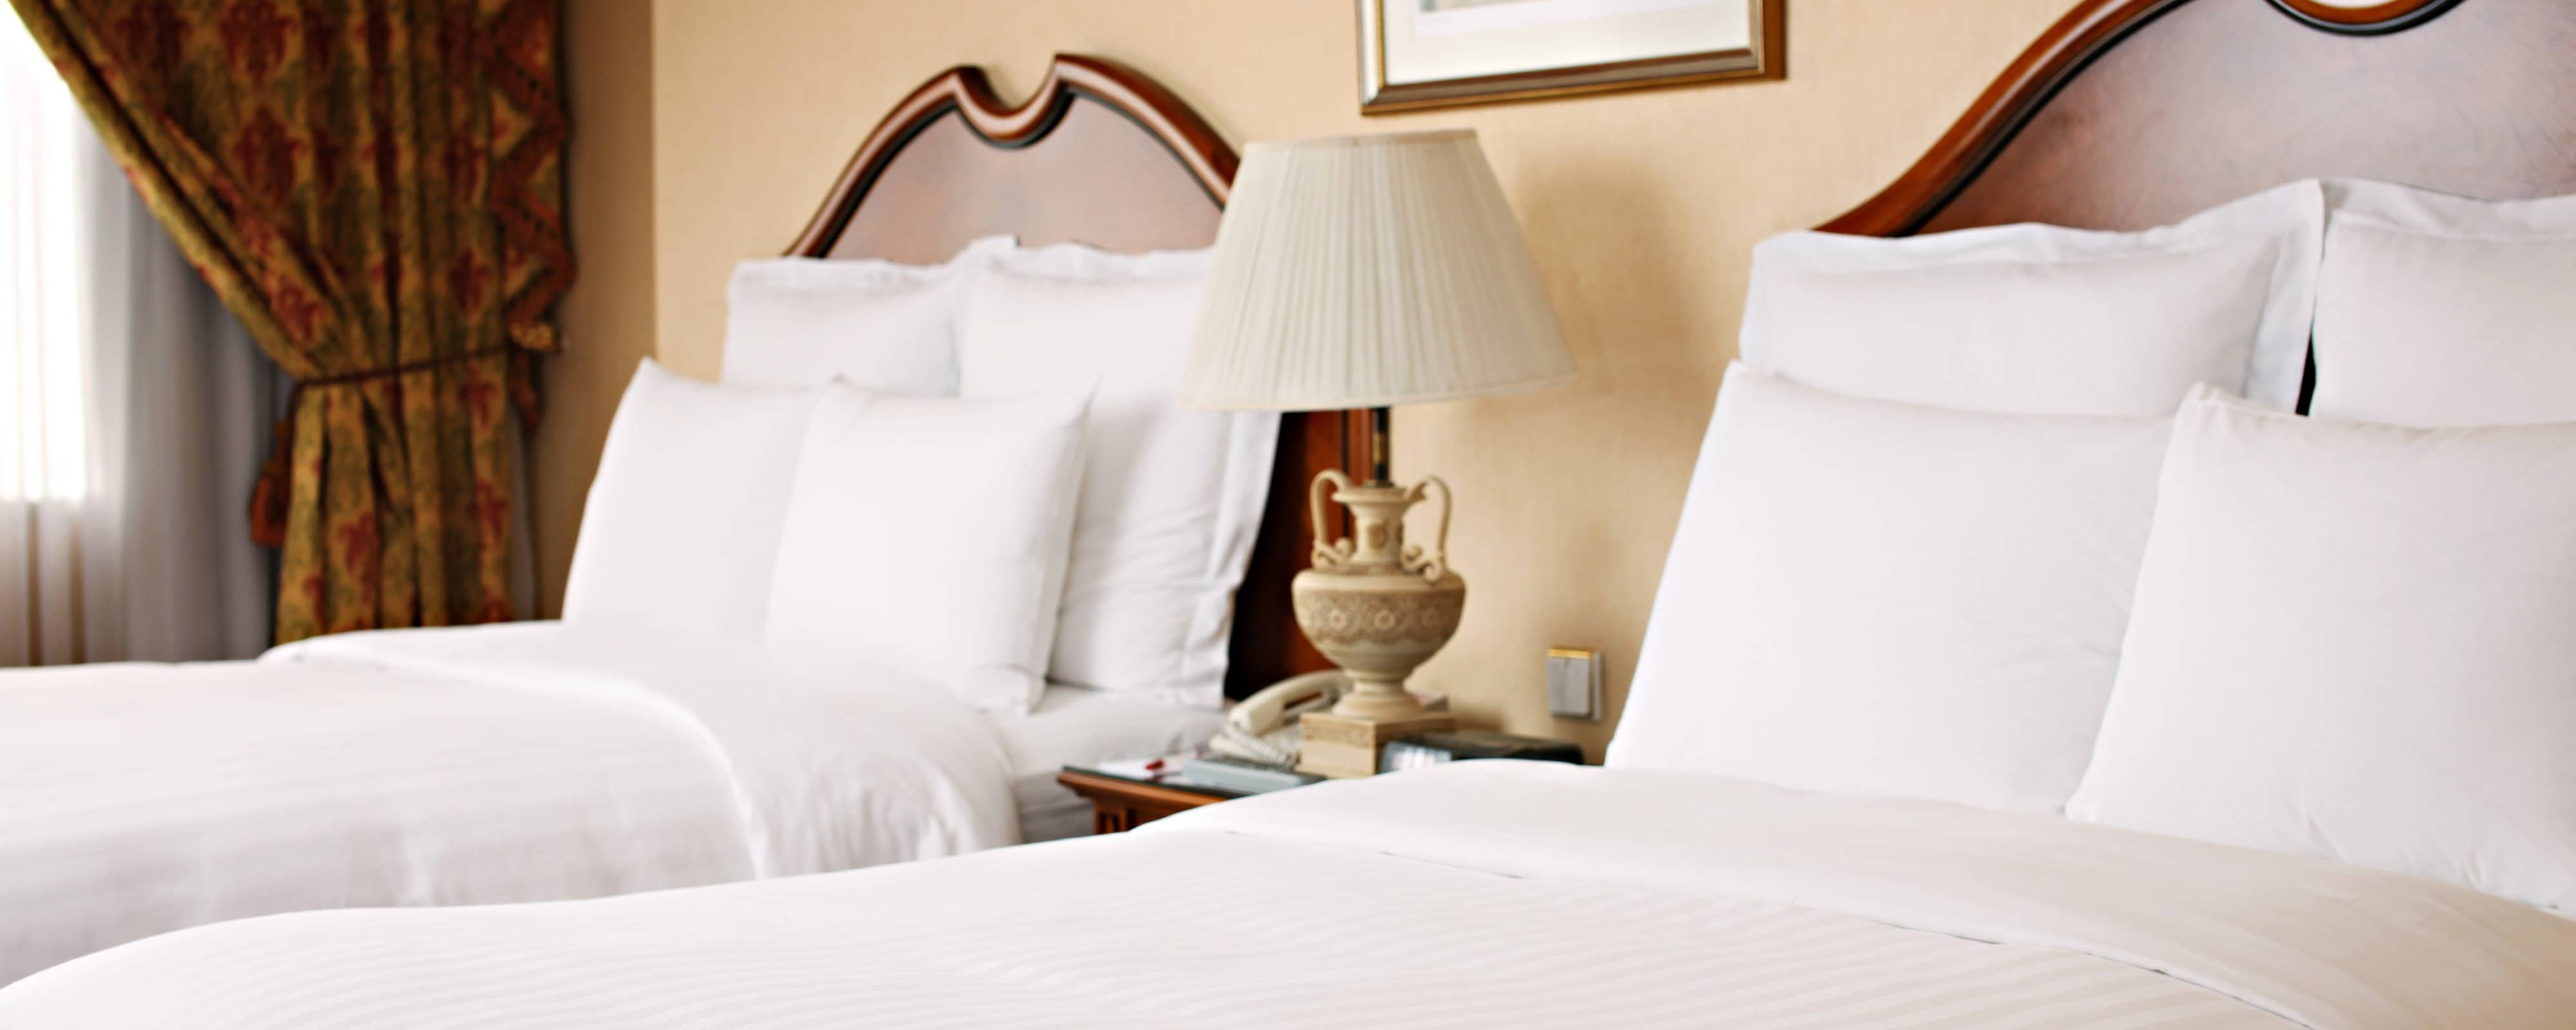 Jeddah Marriott hotel rooms, Jeddah hotel rooms